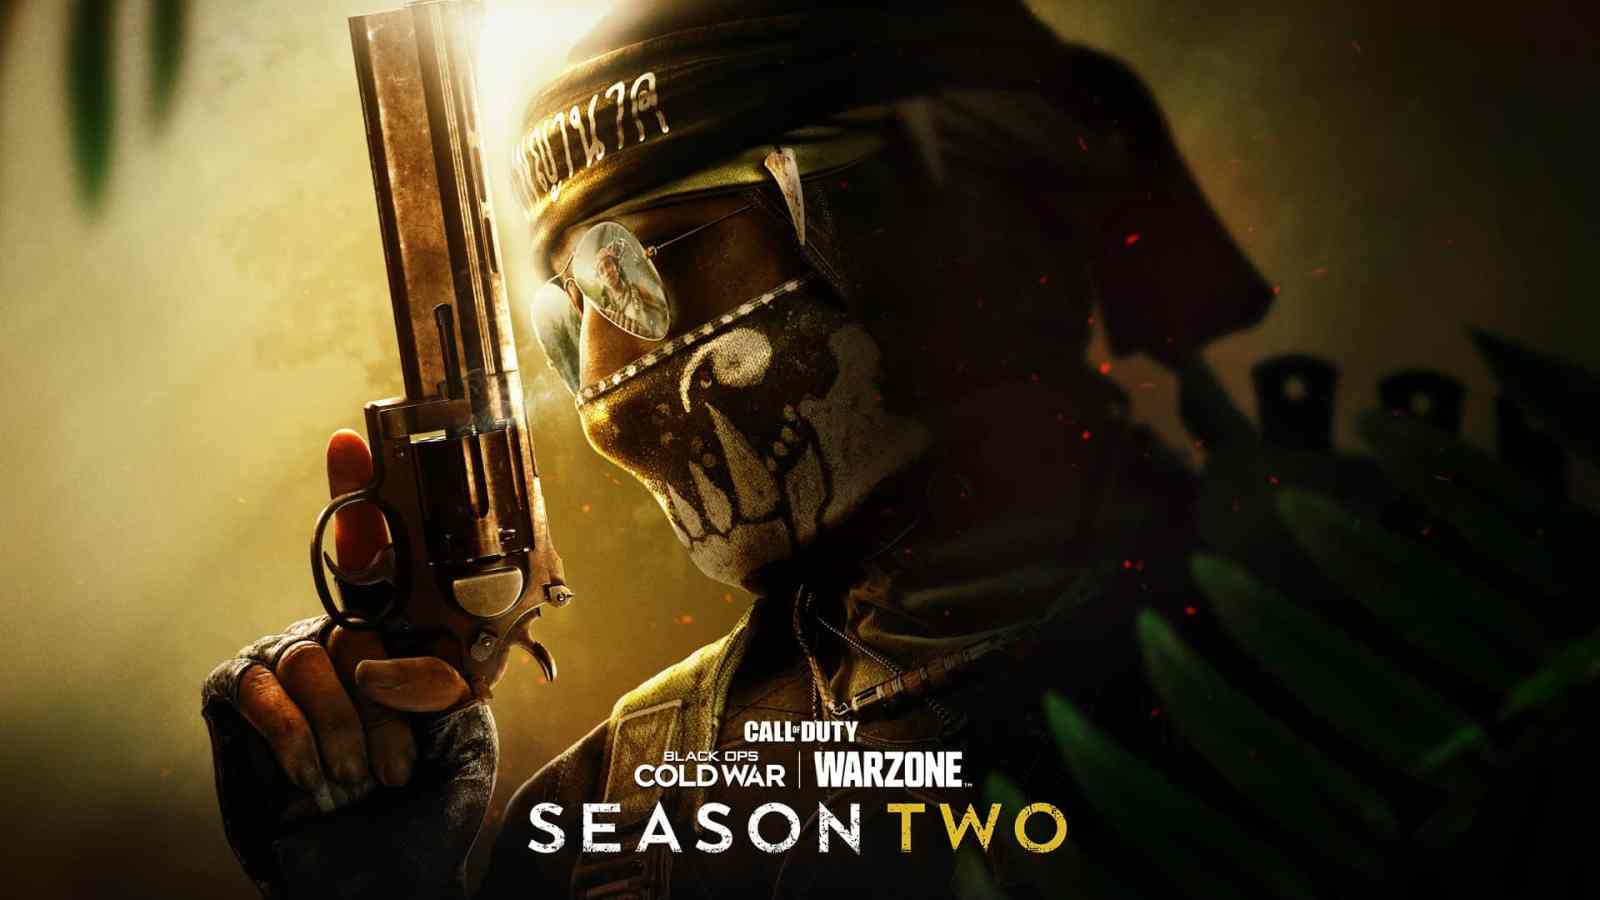 Call of Duty: Black Ops Cold War and Warzone Season Two Will Arrived on February 25